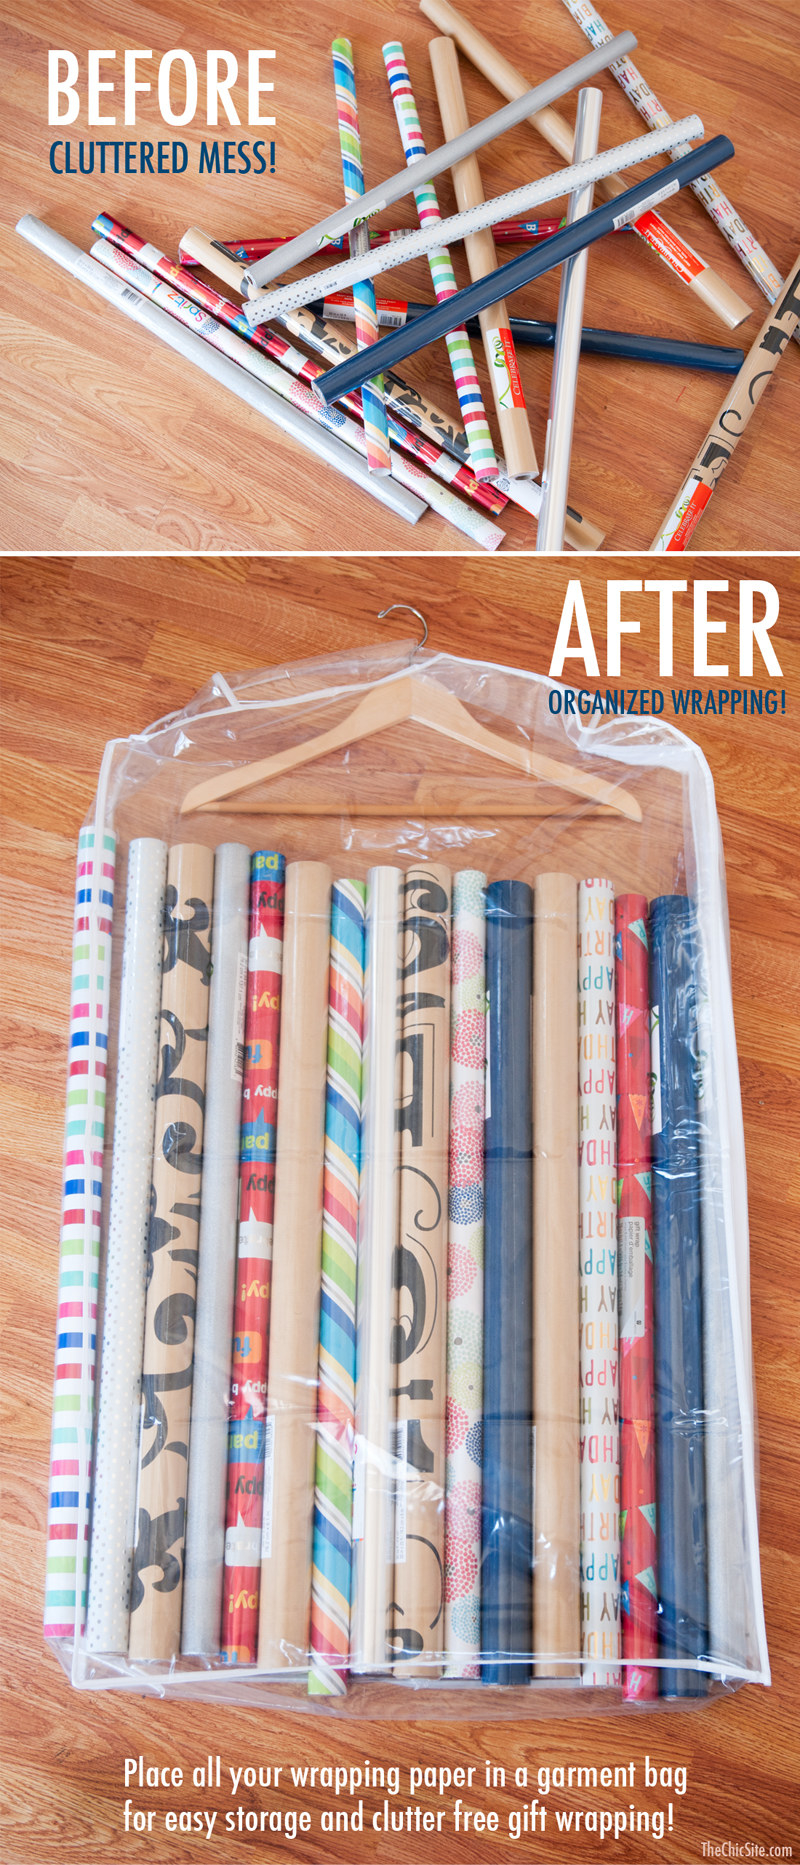 before: wrapping paper rolls in a messy pile and after: wrapping stashed vertically in a garment bag, with a hanger in the top